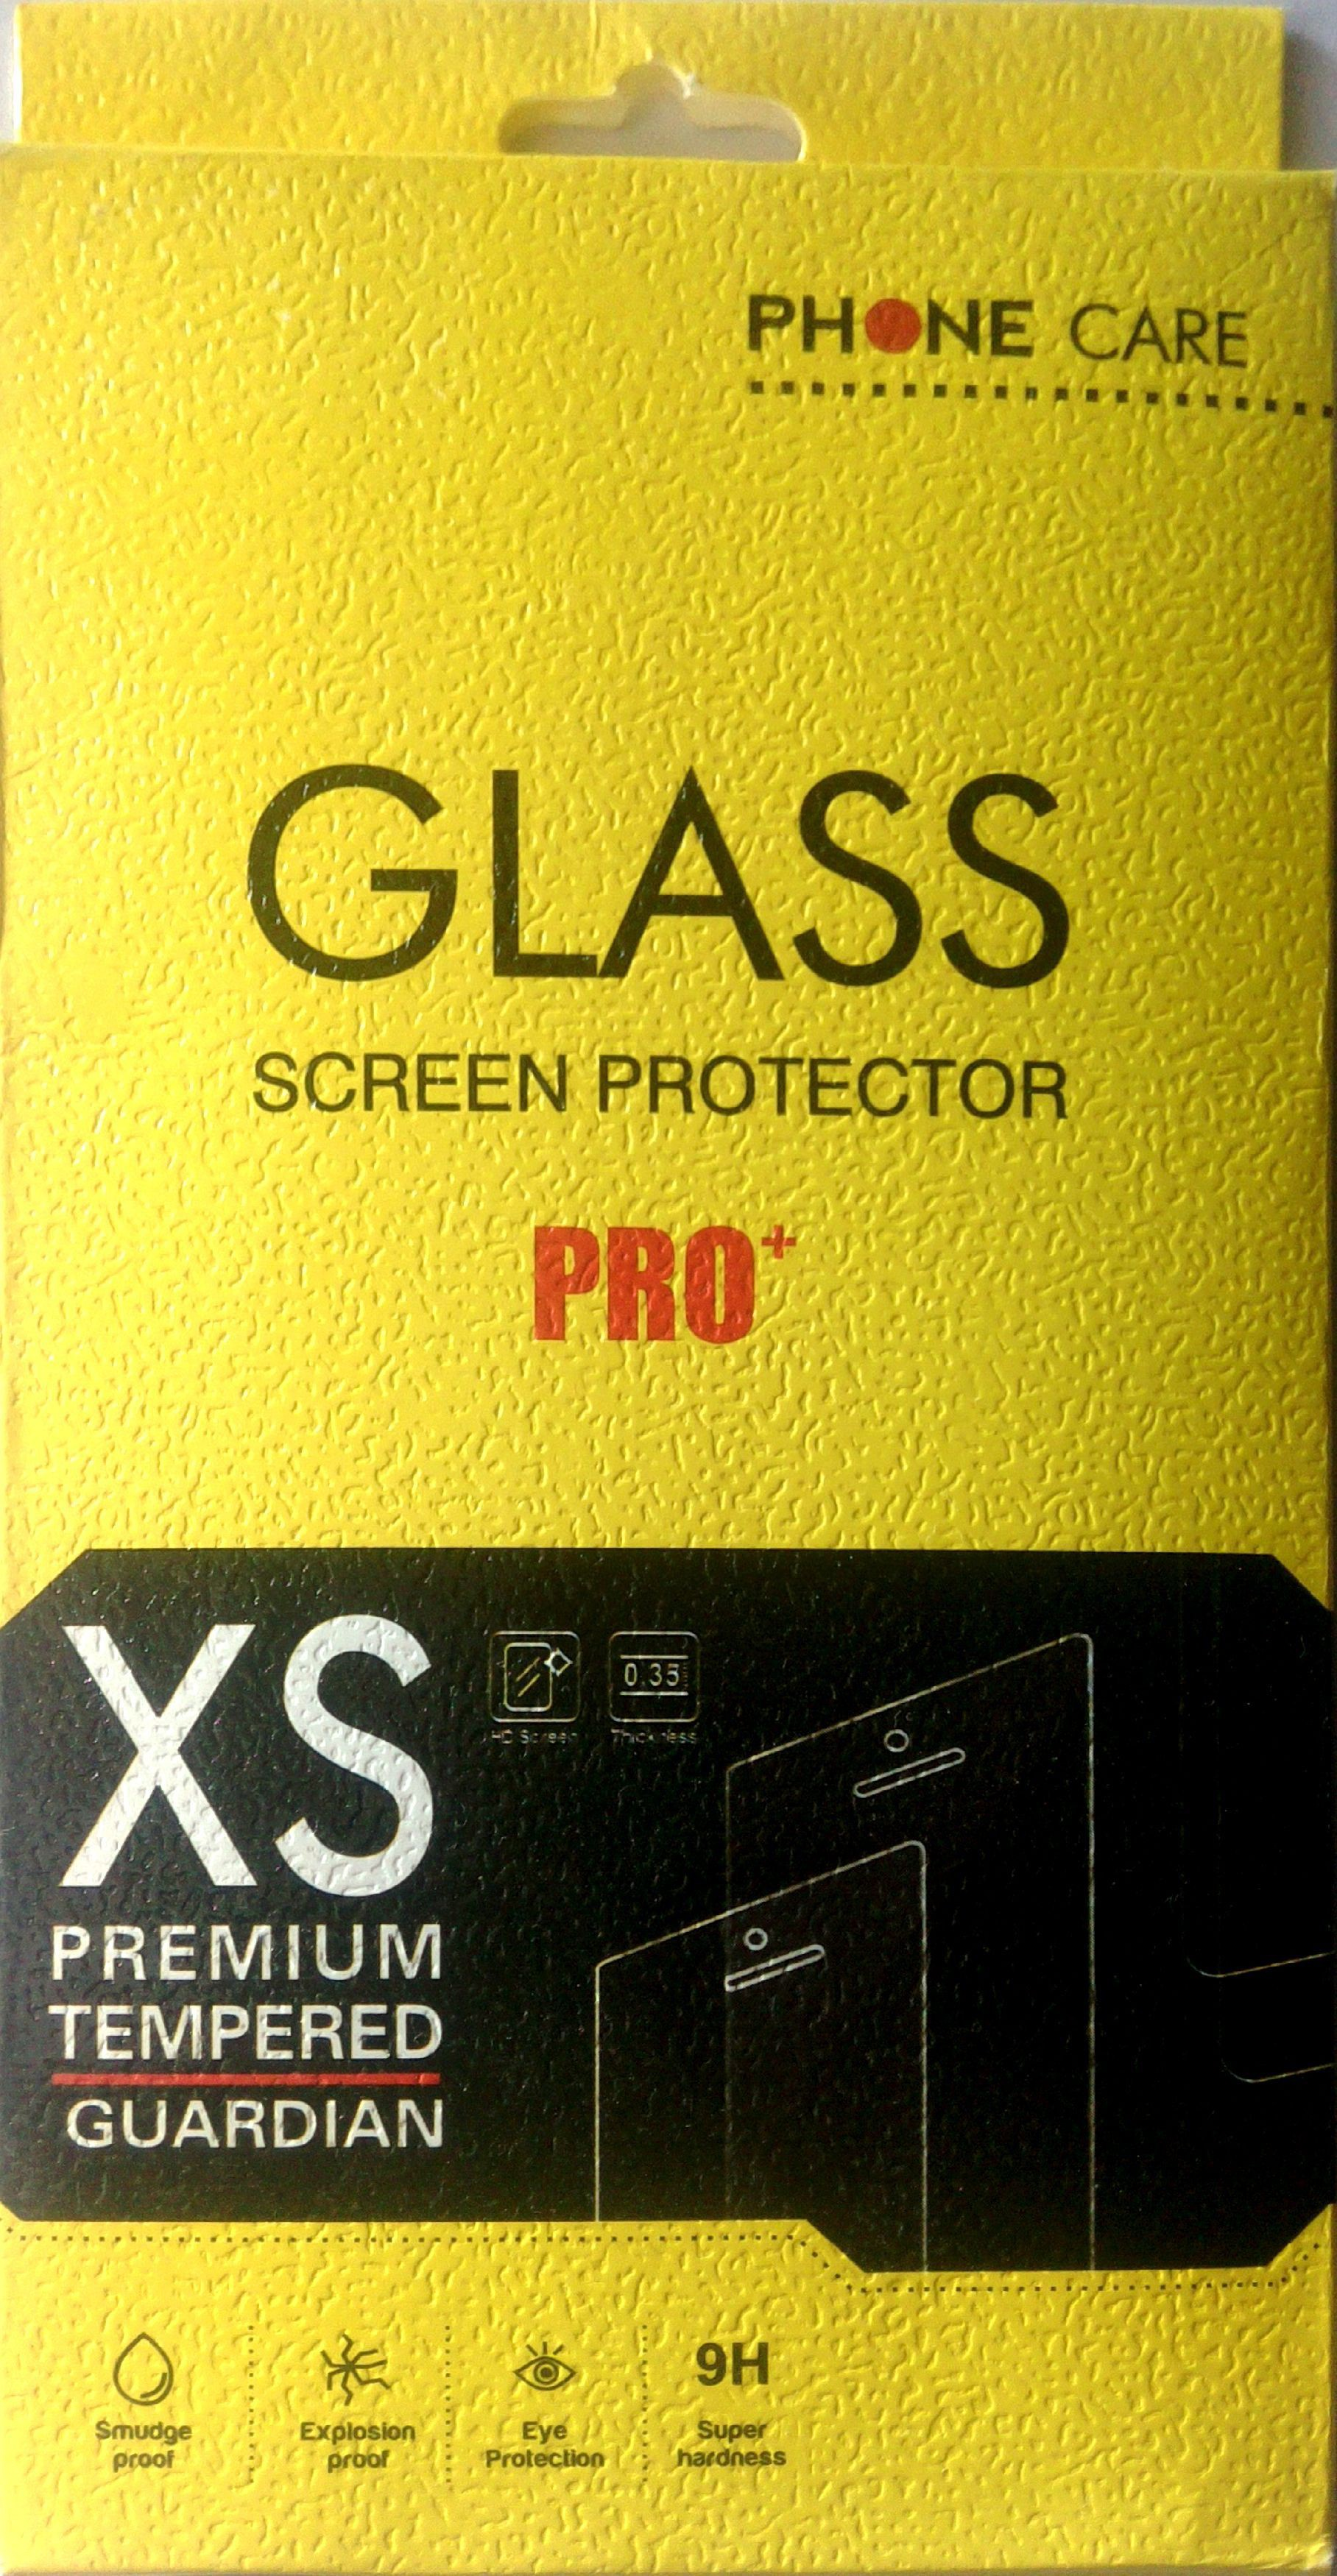 PHONE CARE MOTO PLAY 1 Tempered Glass for MOTOROLA PLAY